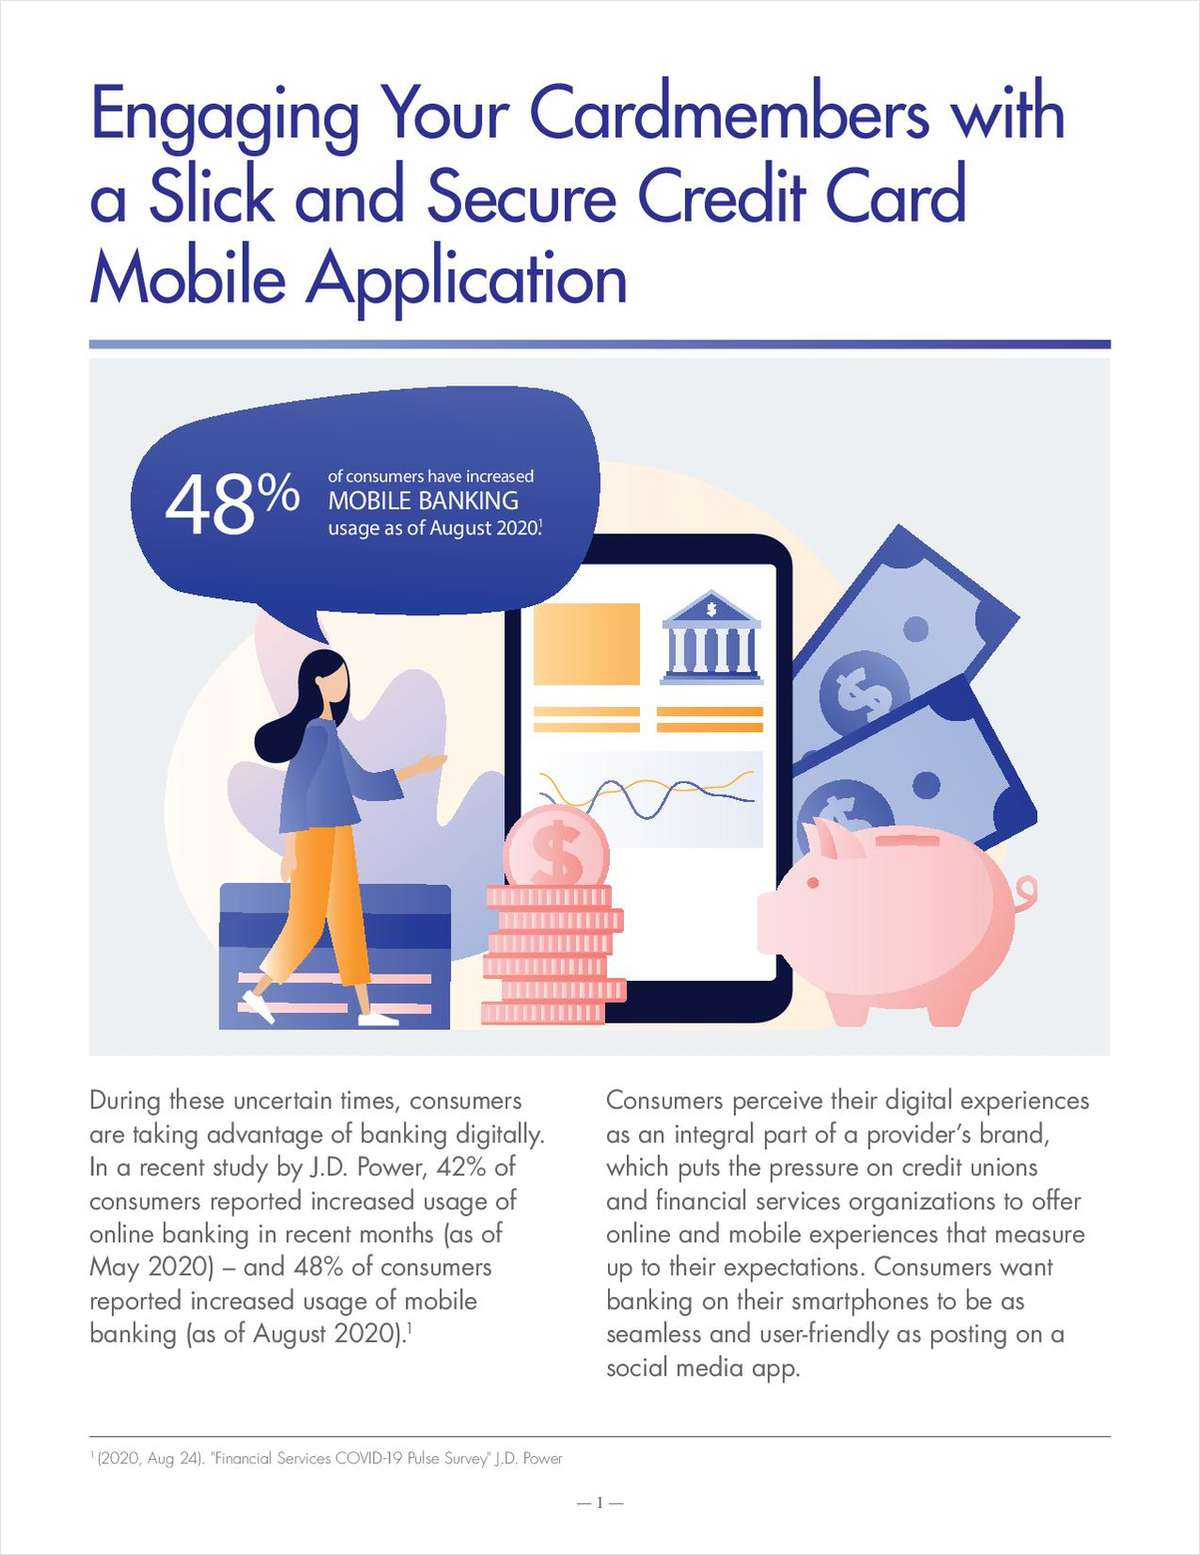 Engaging Your Cardmembers with a Slick and Secure Credit Card Mobile Application